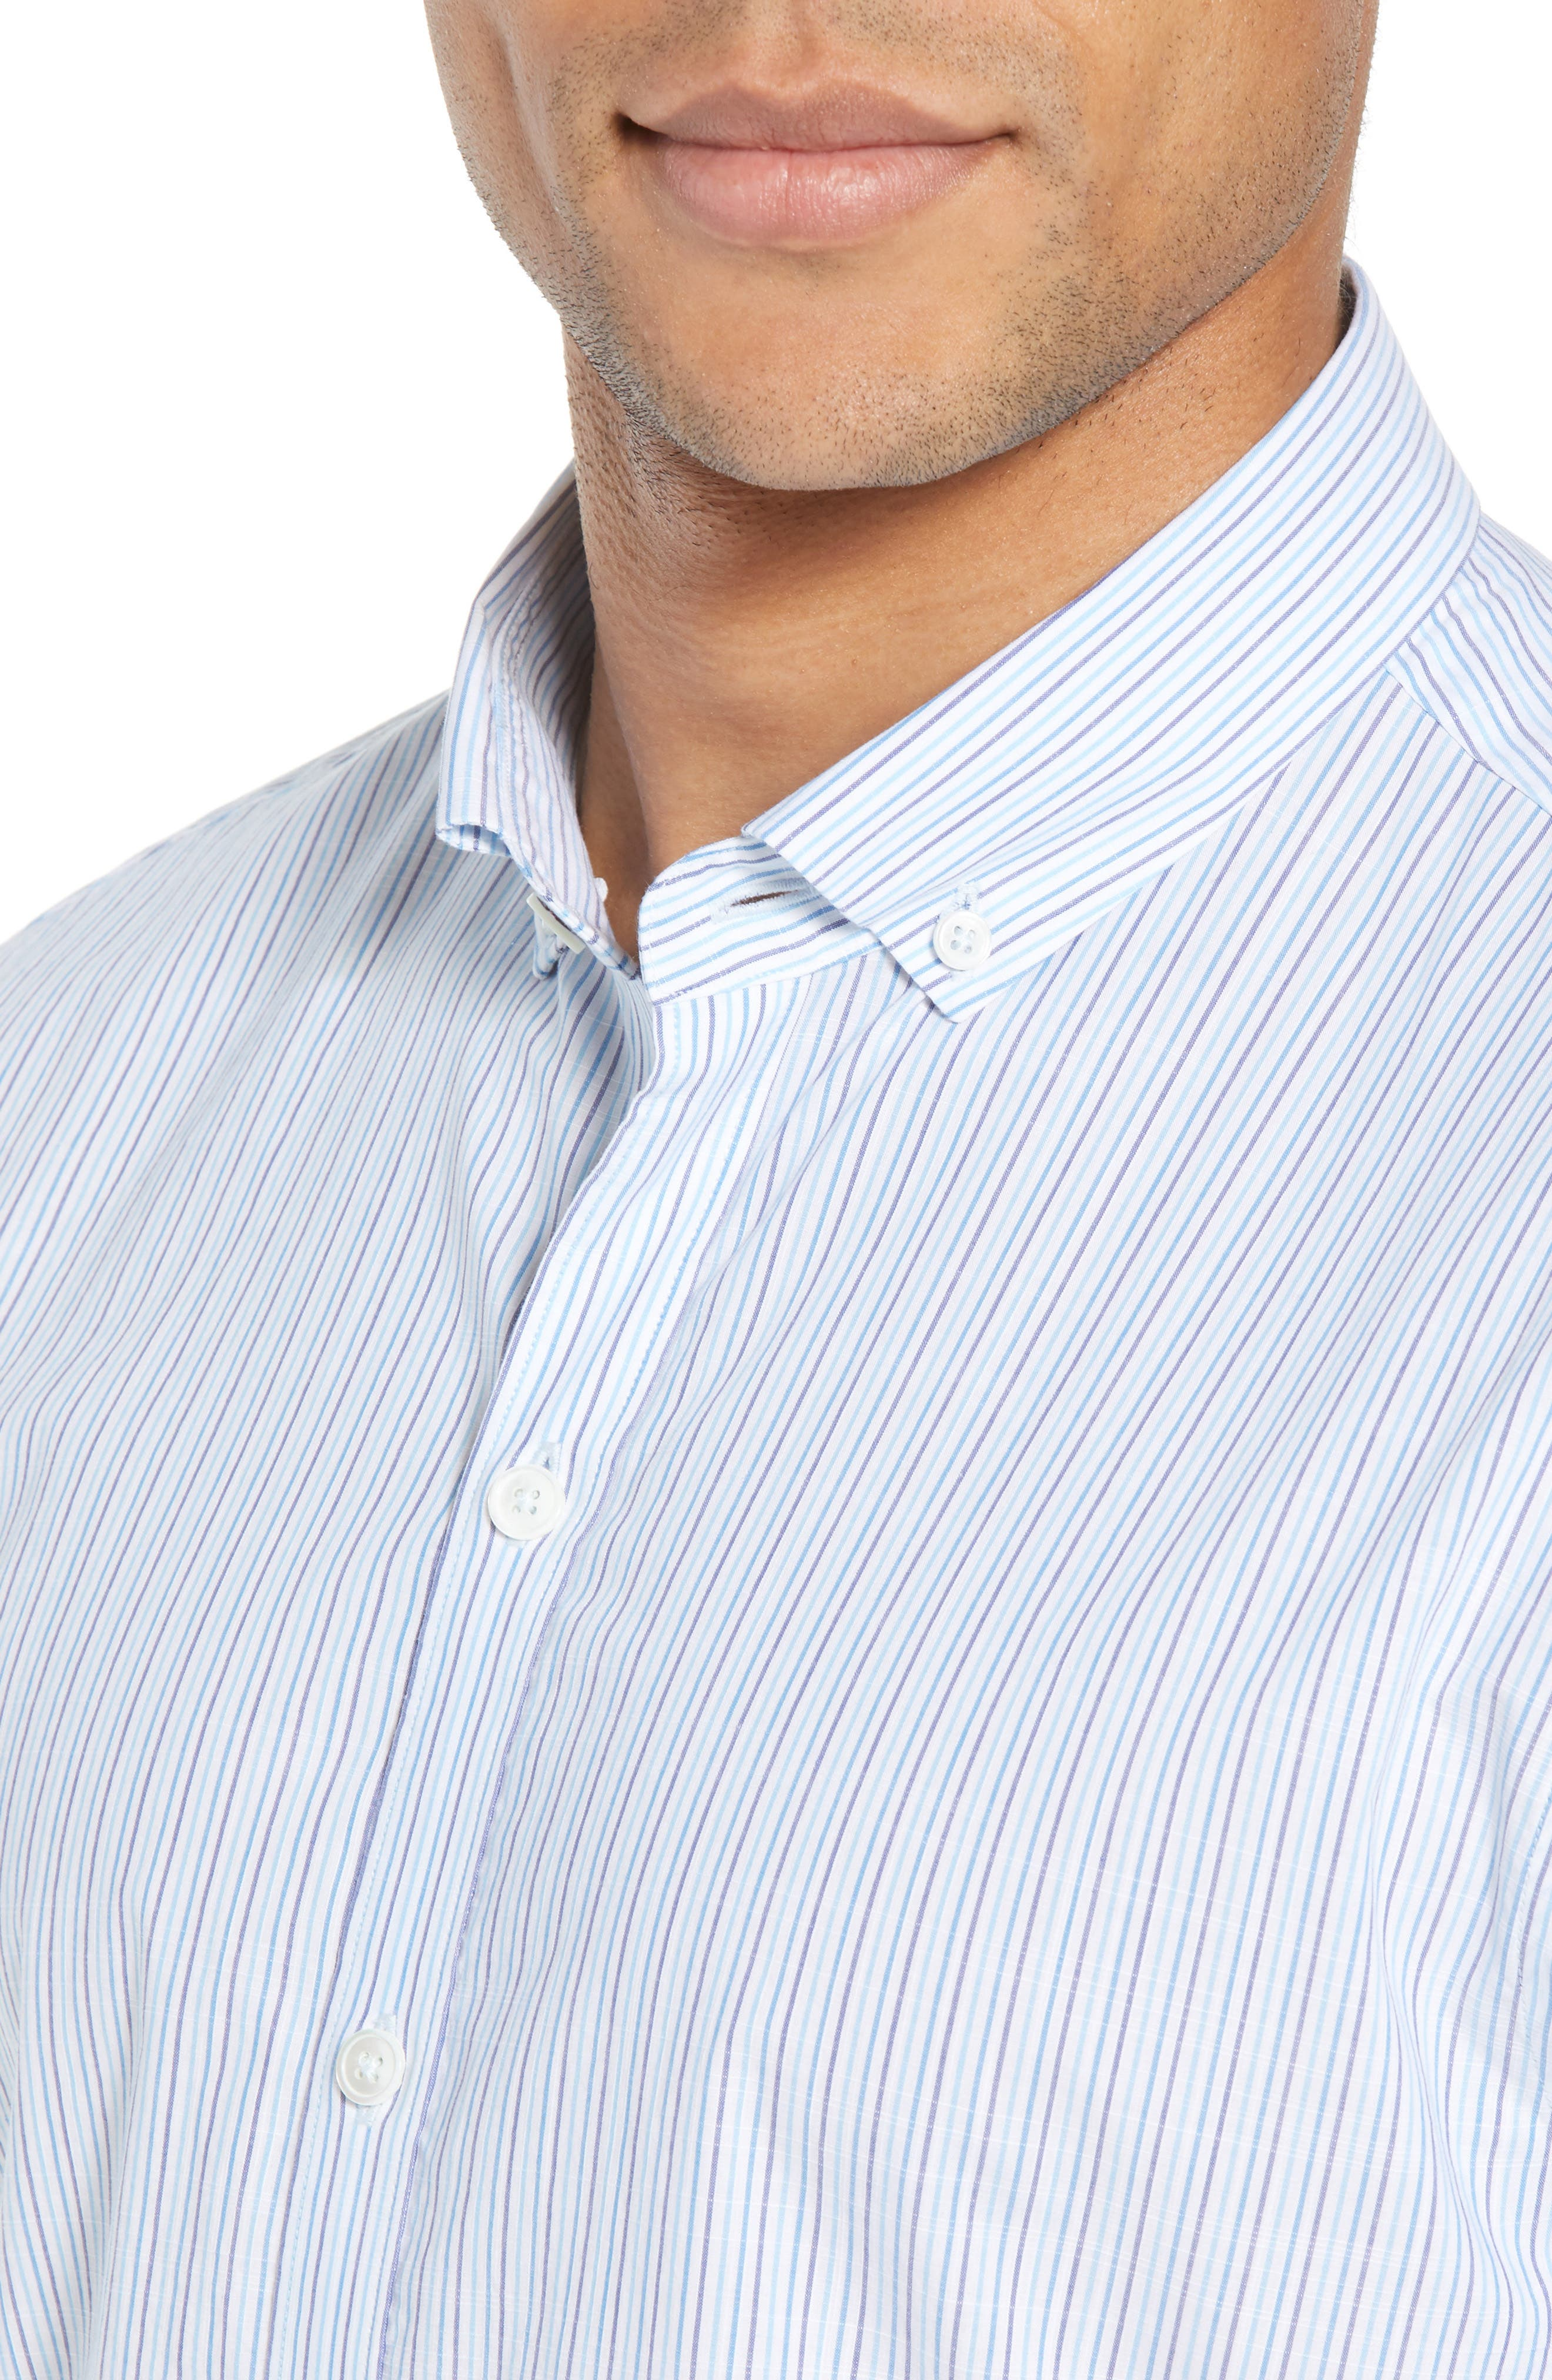 Skeeter Stripe Sport Shirt,                             Alternate thumbnail 2, color,                             Aqua